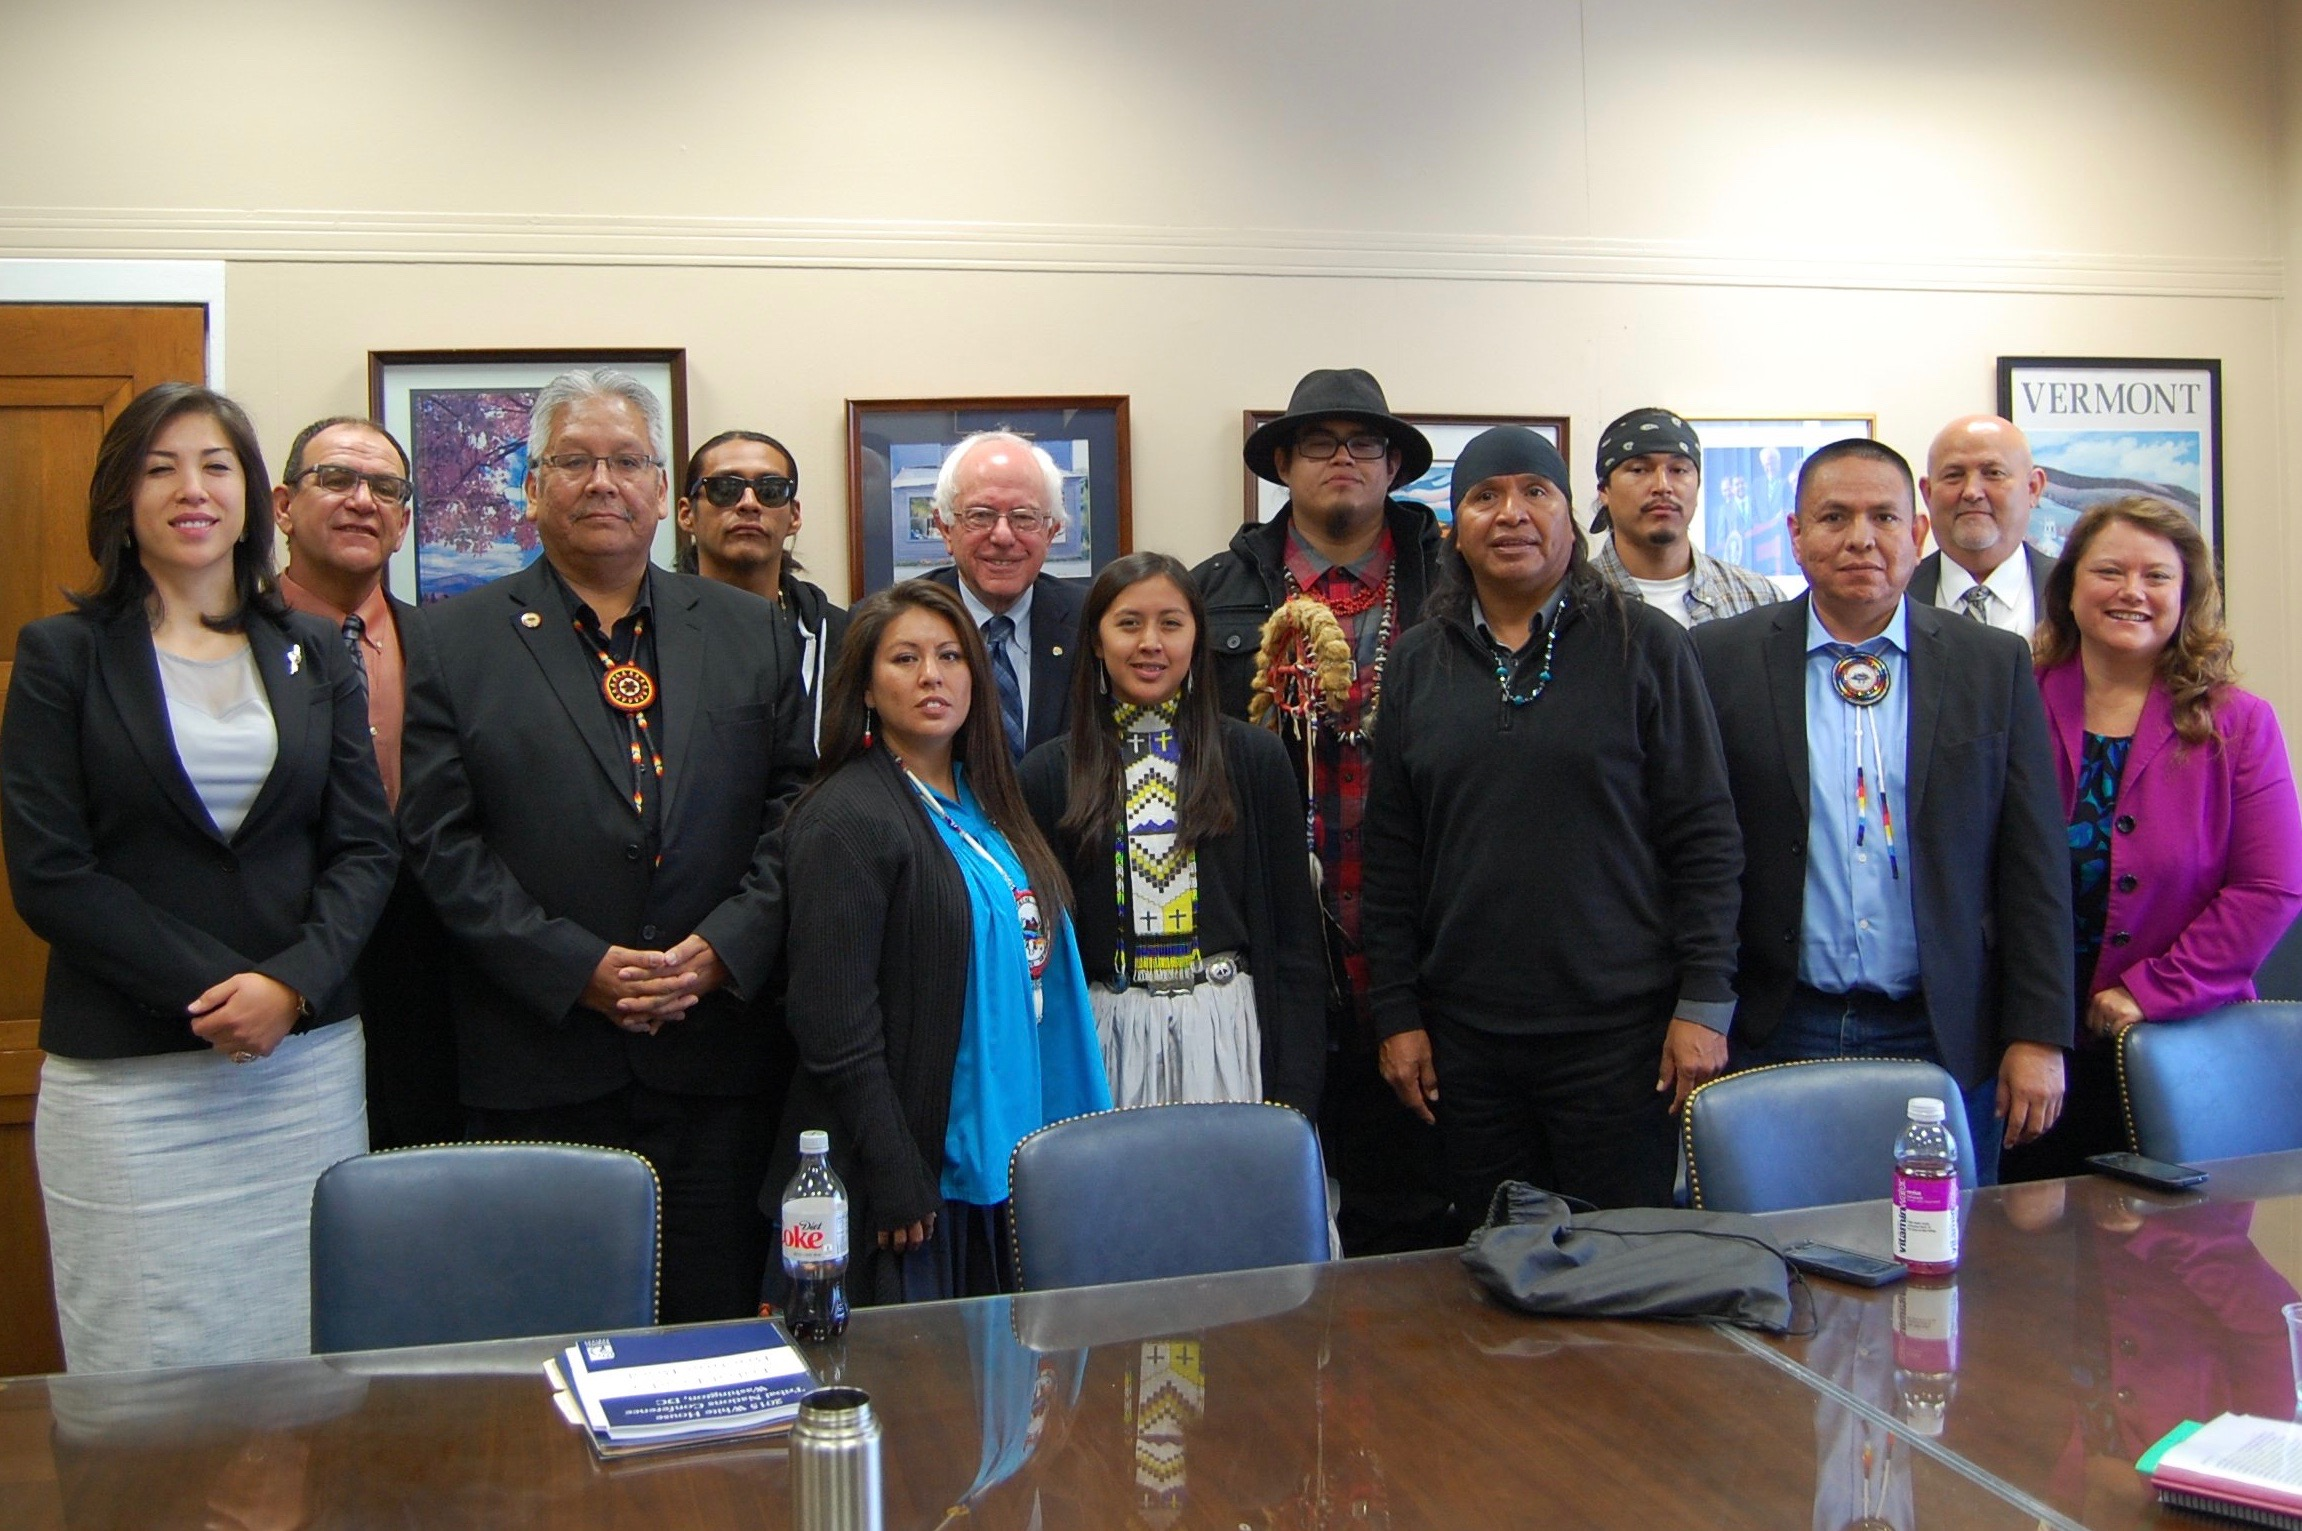 Stephen Fox: Bernie Sanders works to protect sacred Apache site